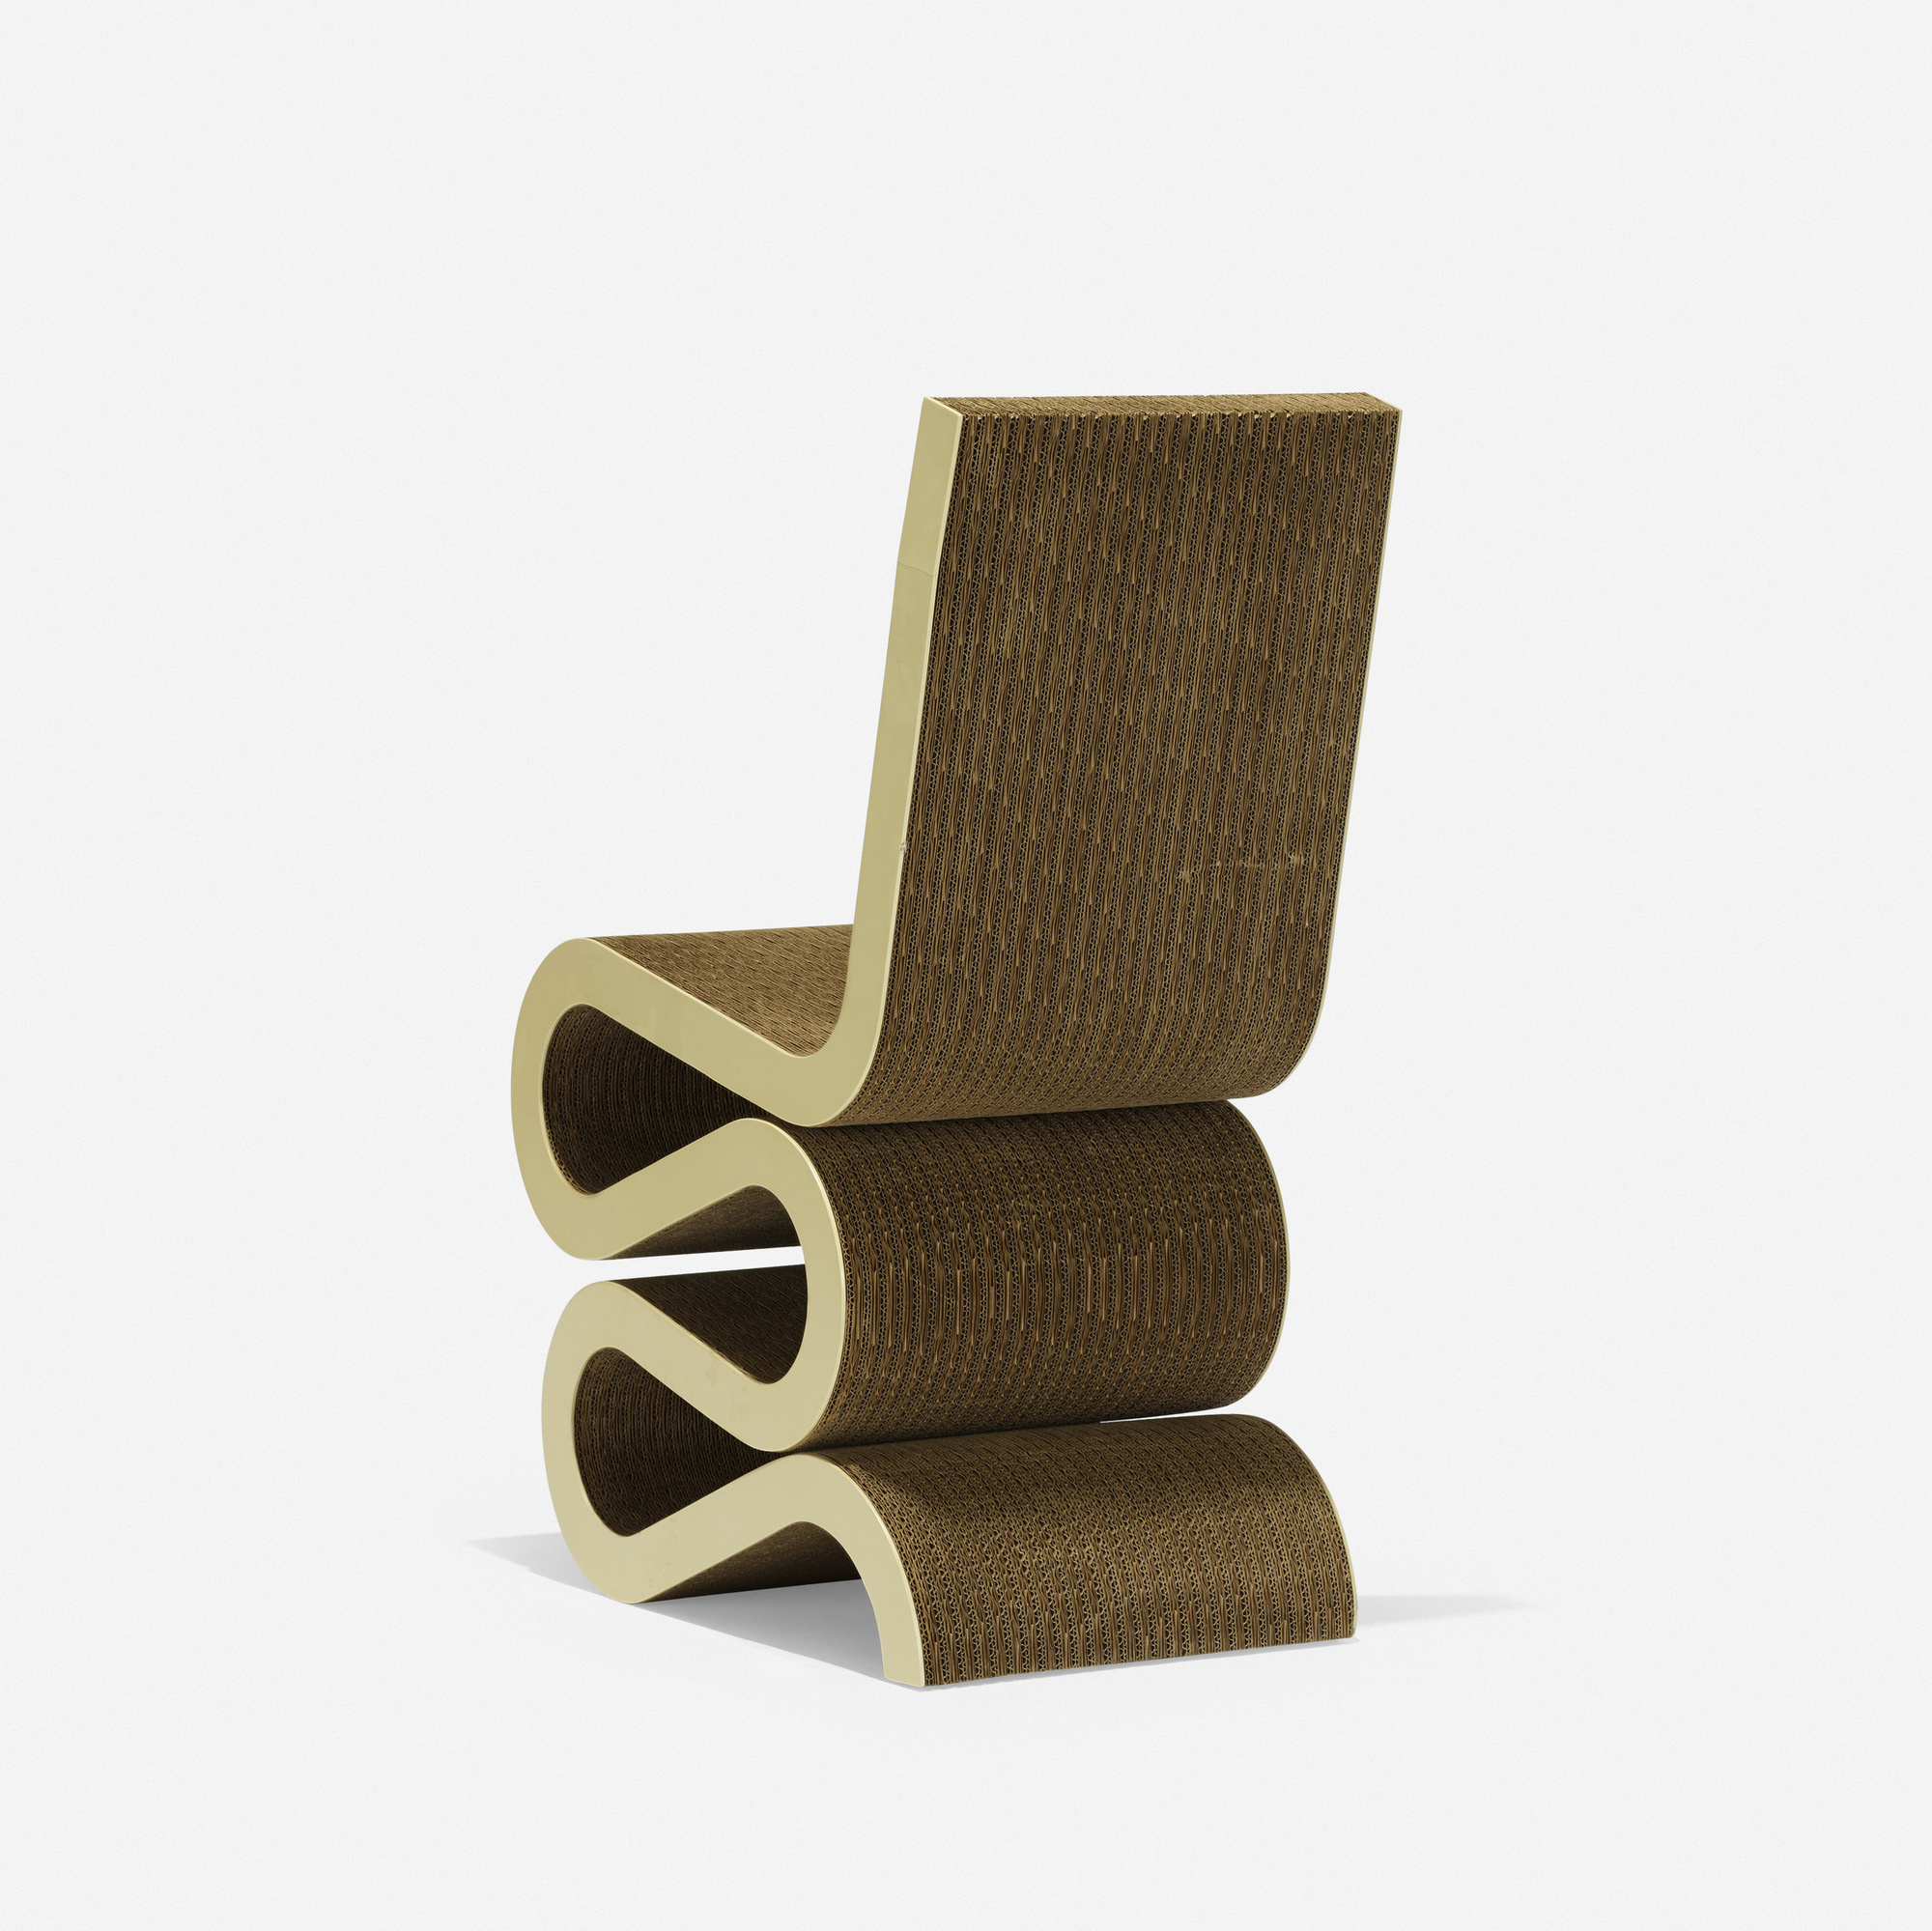 193: Frank Gehry / Wiggle chair (2 of 3)